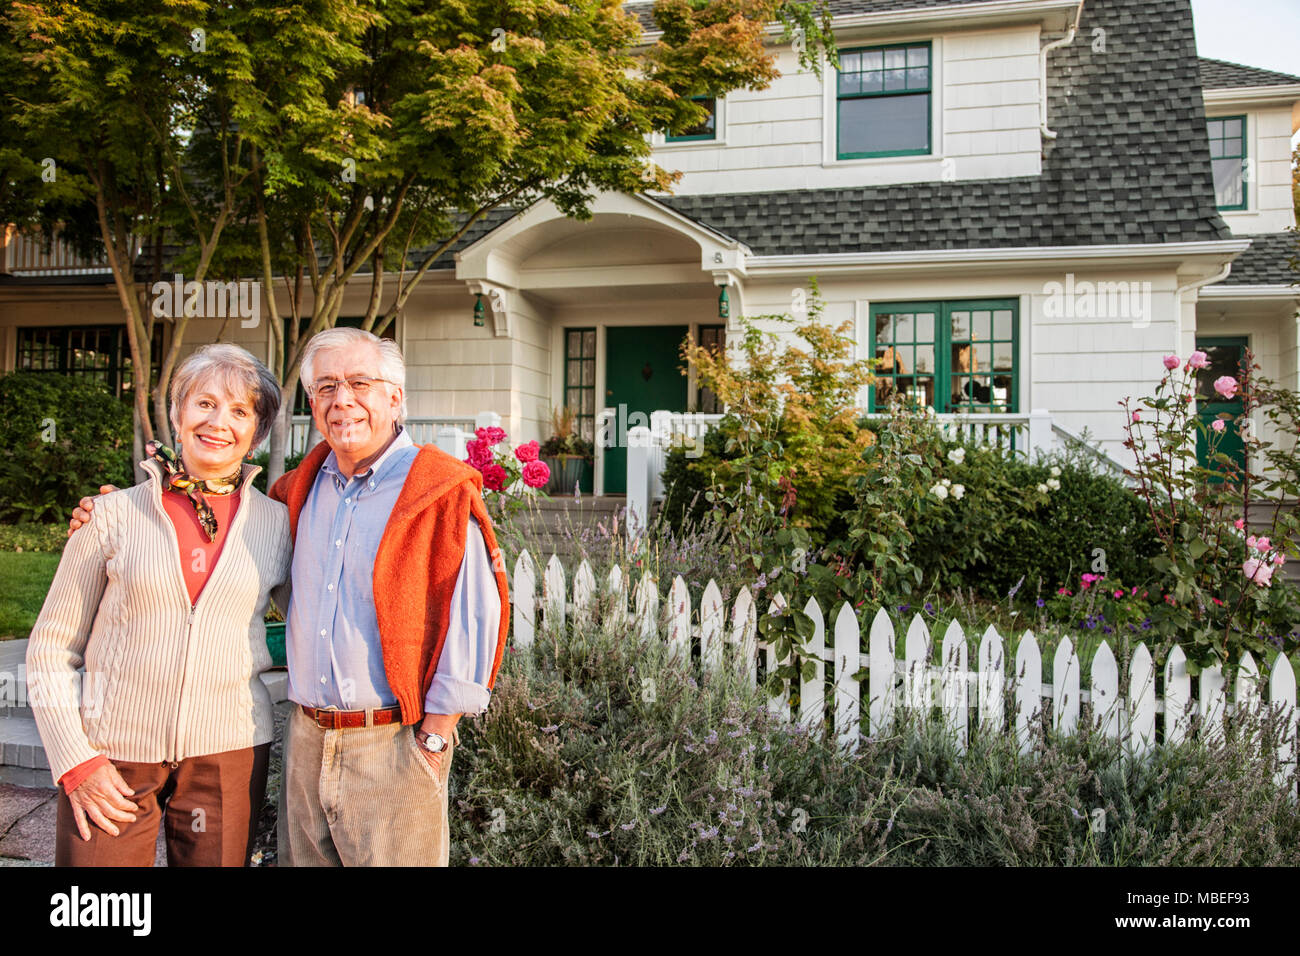 Hispanic senior couple in front of their remodeled older style home. - Stock Image